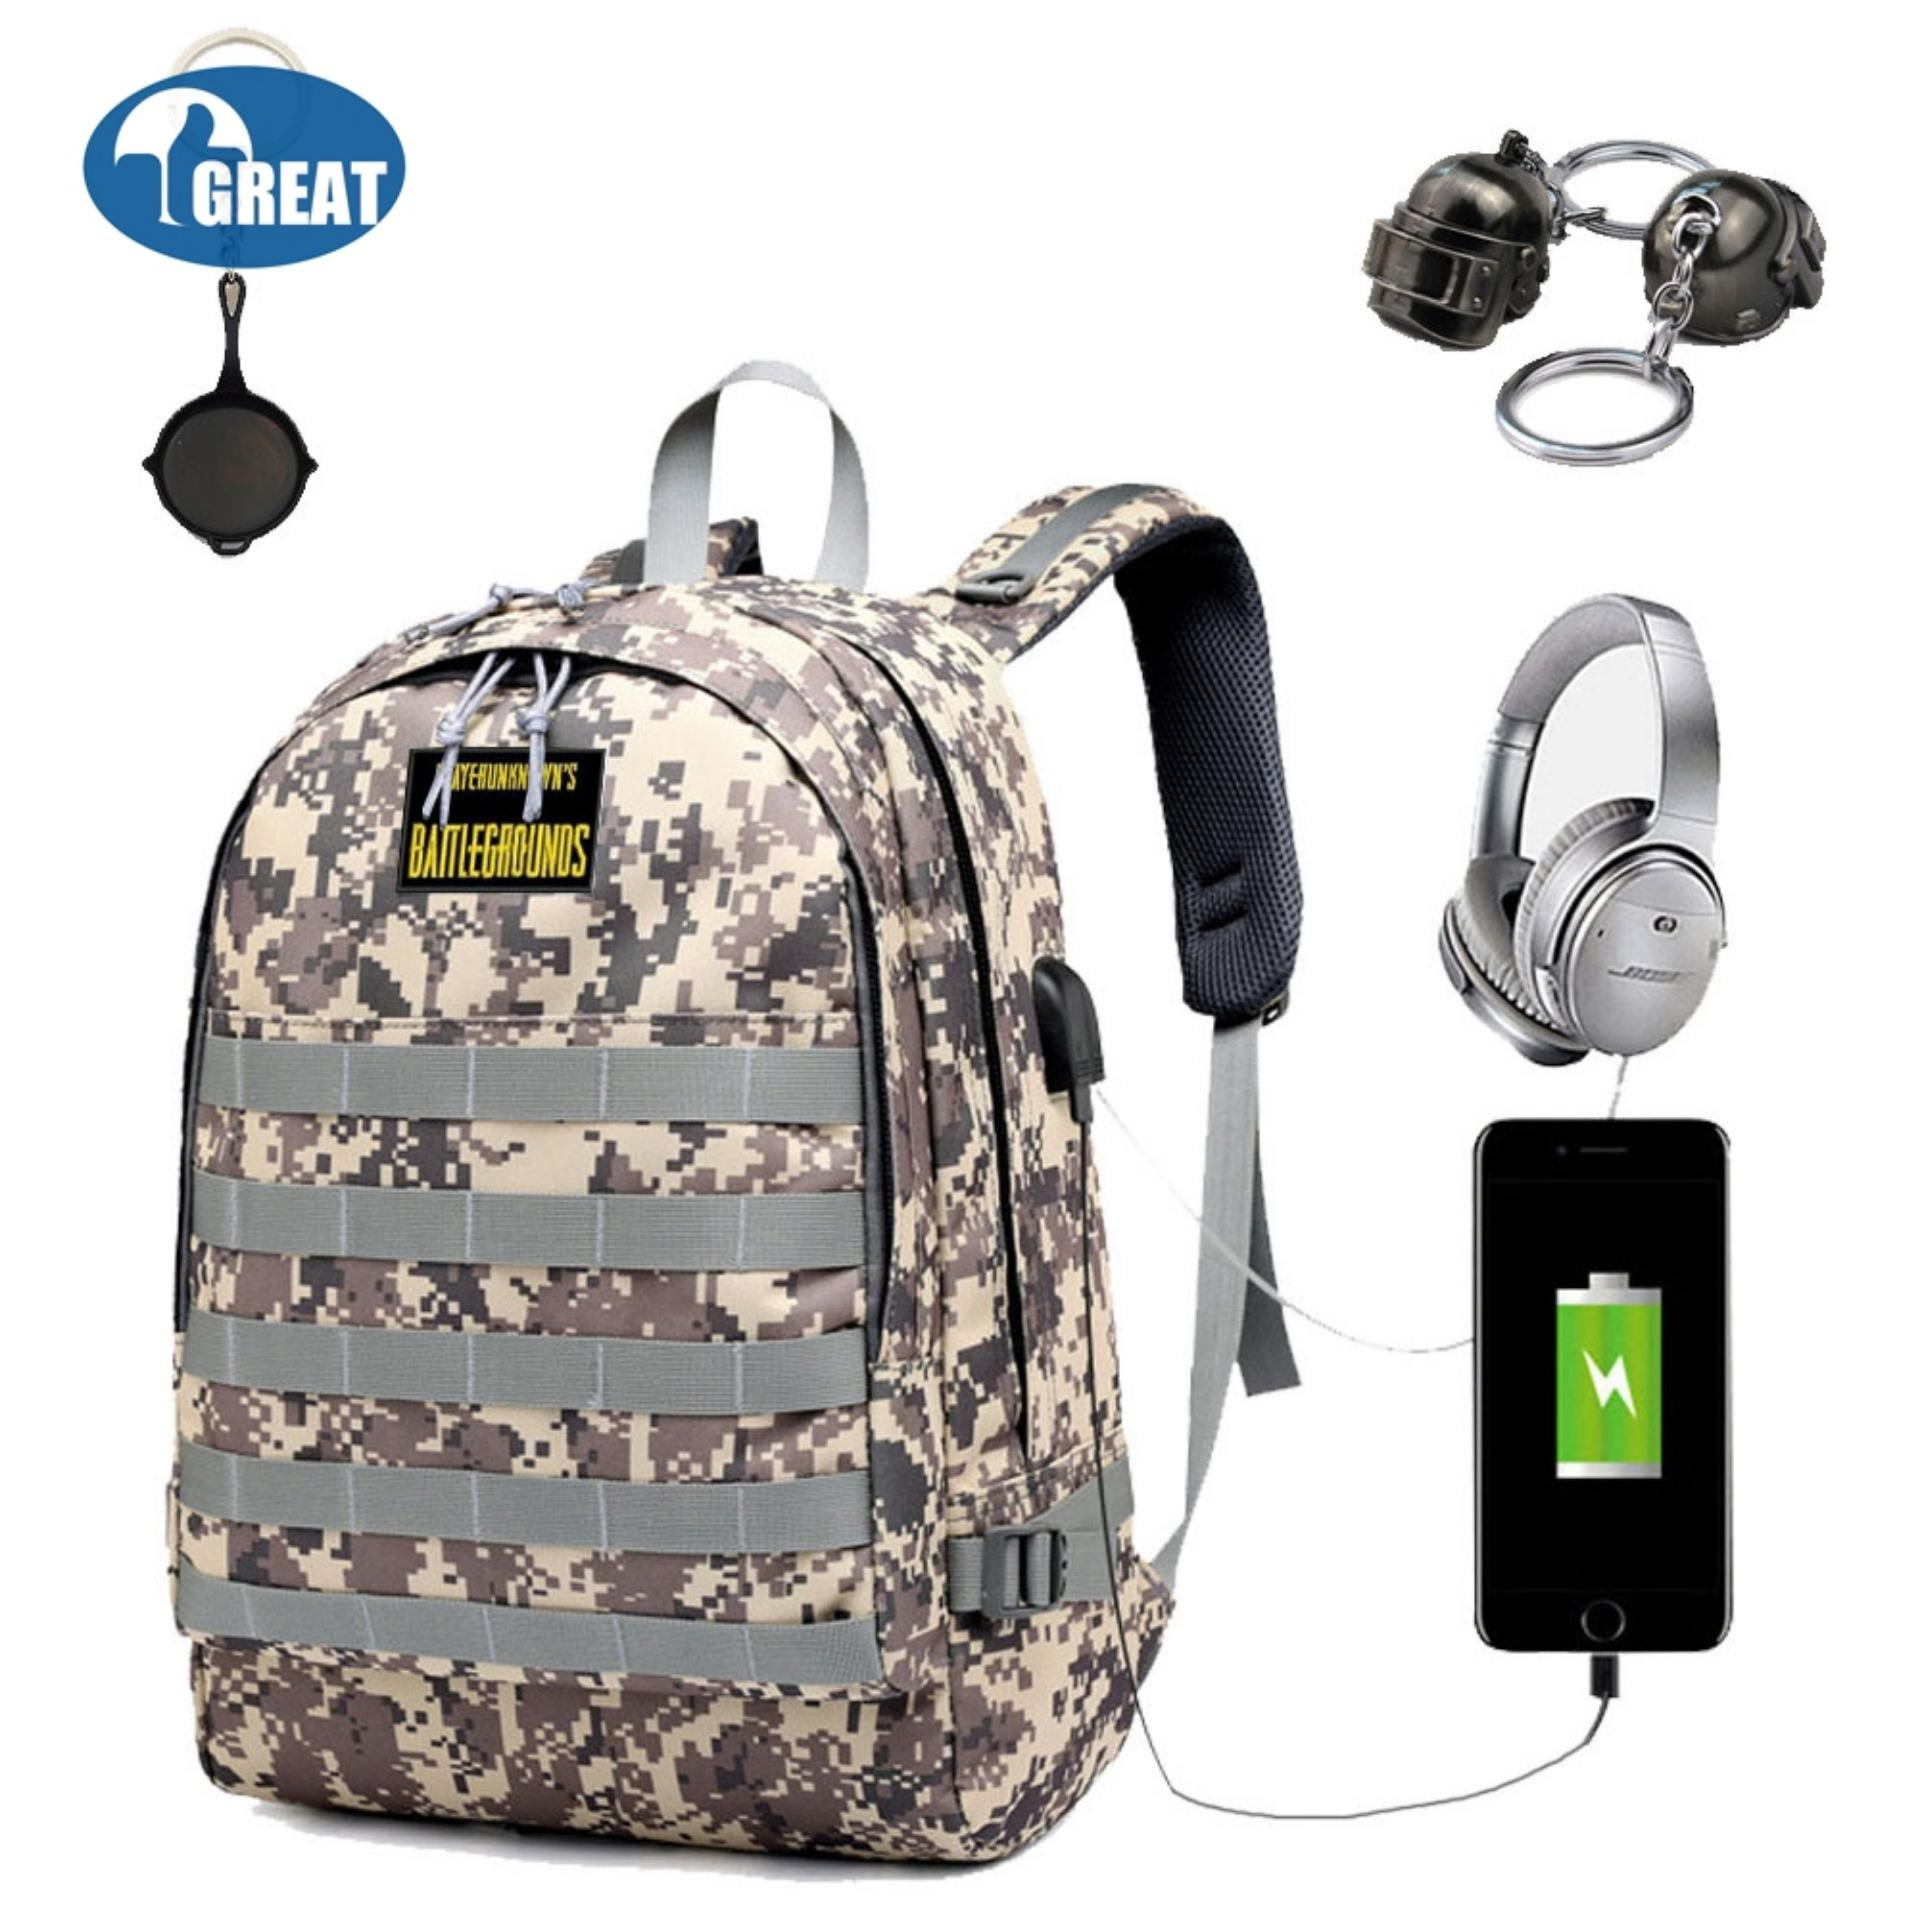 GoodGreat PUBG Backpack Travel Bag Hiking Bag Camping Bag Rucksack,Waterproof Travel Backpack With USB Charging Port & Headphone Interface,Fits Under 18-Inch Laptop Notebook (PUBG Level 3 Bag) - intl